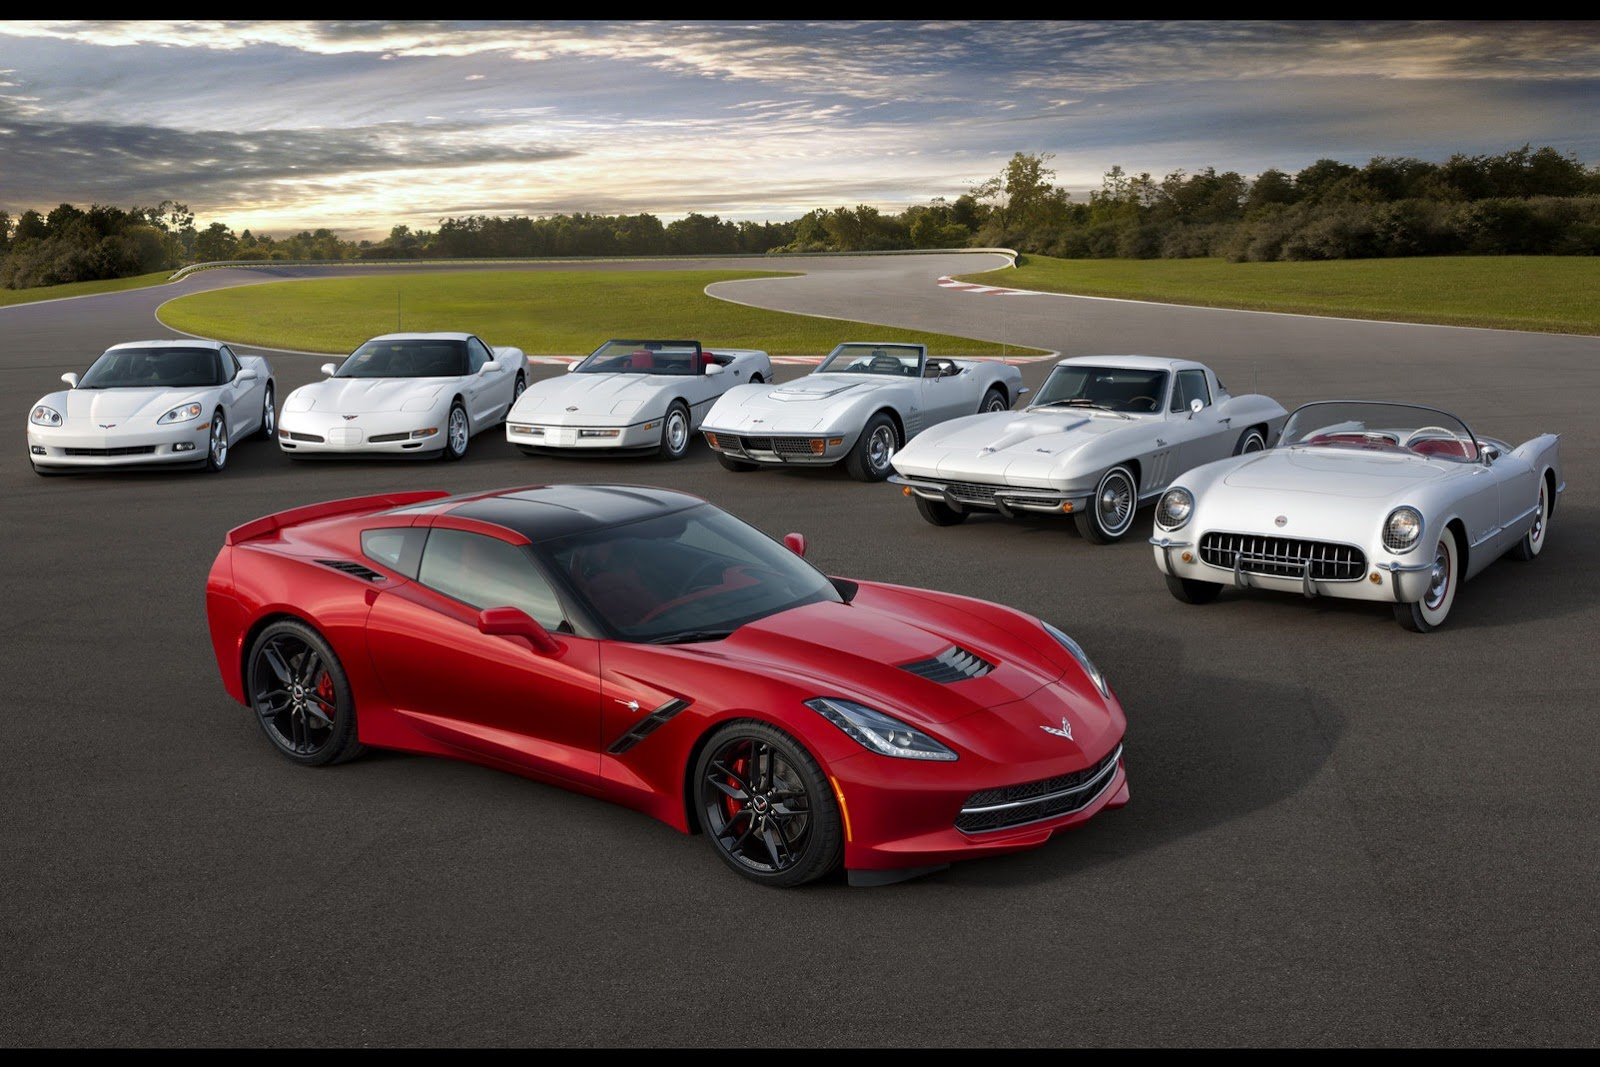 Chevrolet corvette photo - 3